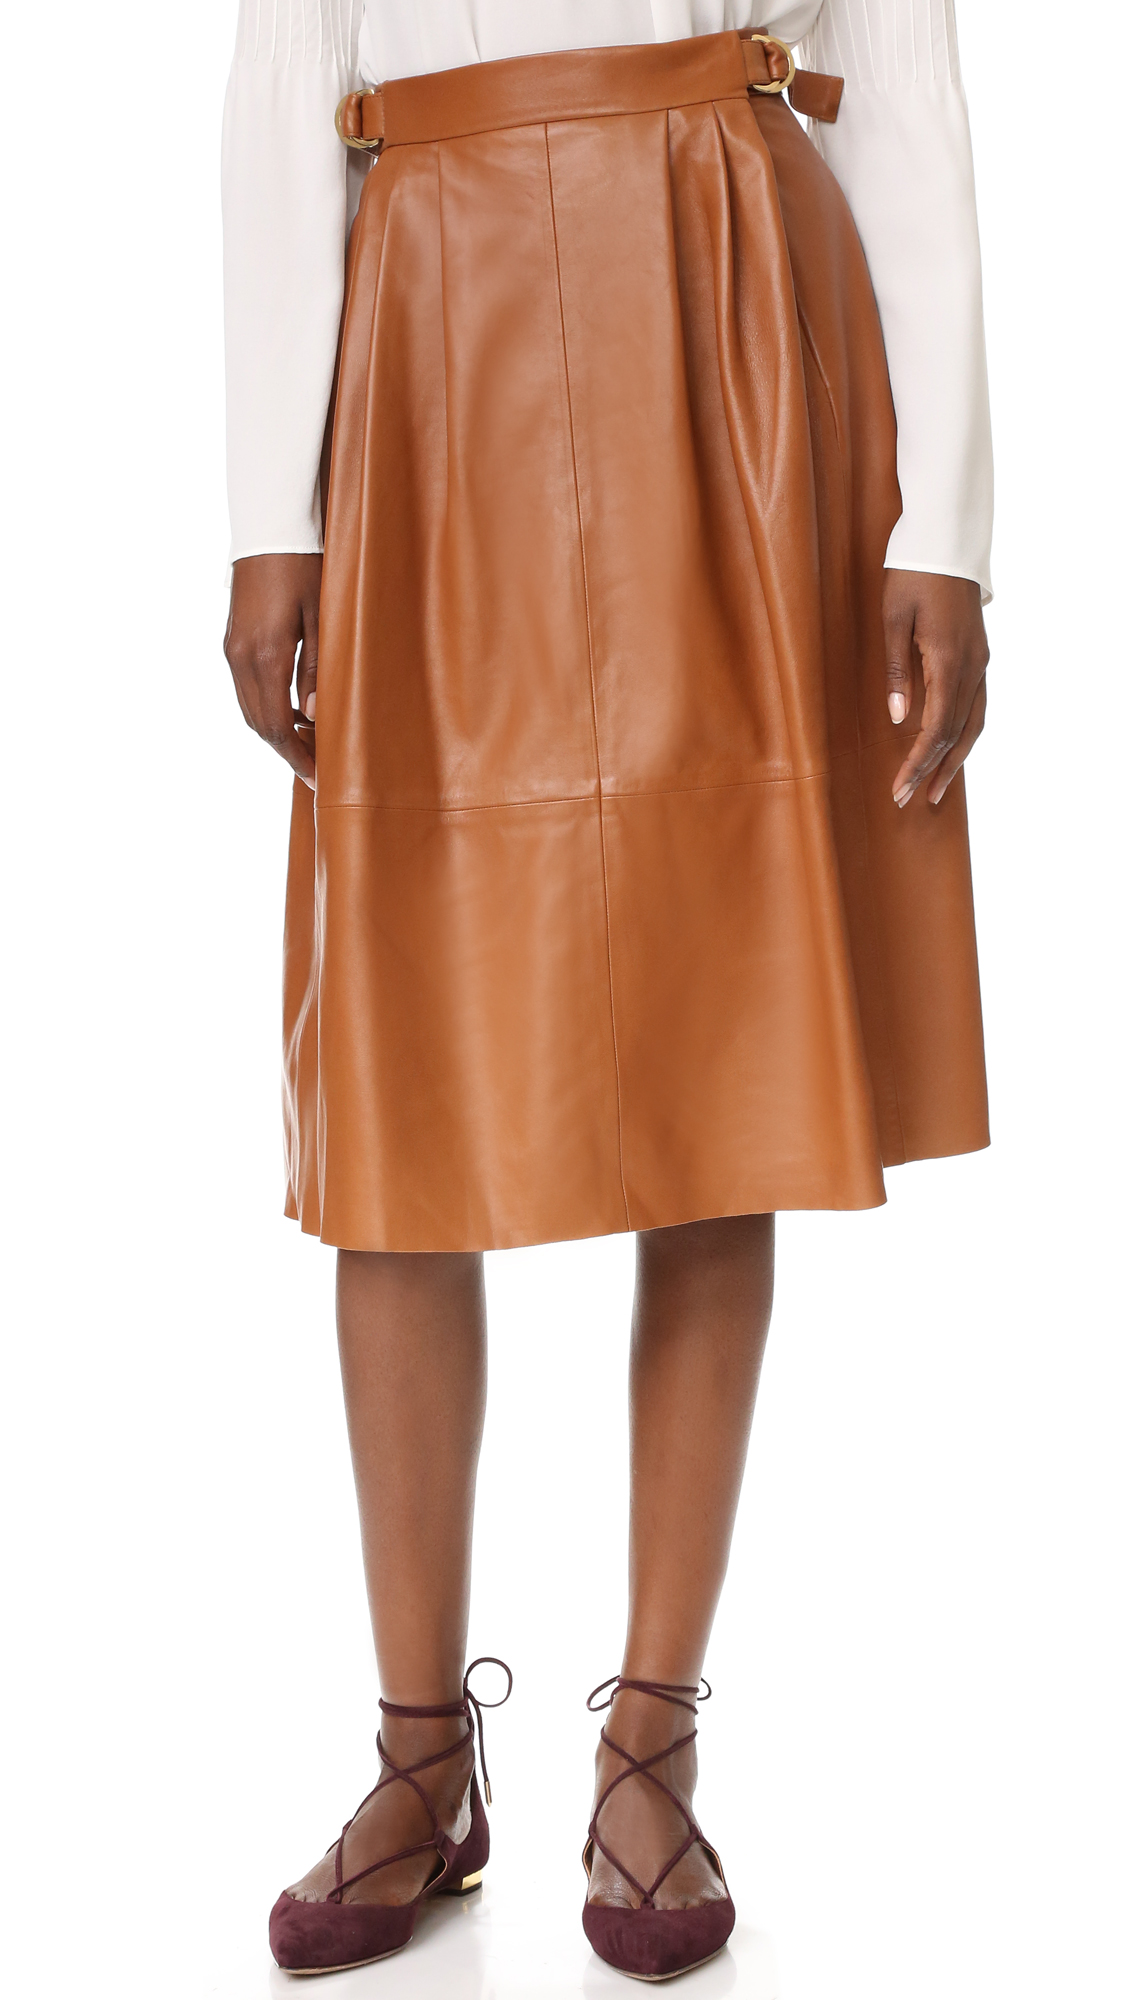 A chic Derek Lam skirt in buttery leather. Gold tone D ring buckles cinch the straps at the hips. On seam hip pockets. Lined. Fabric: Soft leather. Shell: 100% lambskin. Lining: 52% viscose/48% cotton. Dry clean. Made in